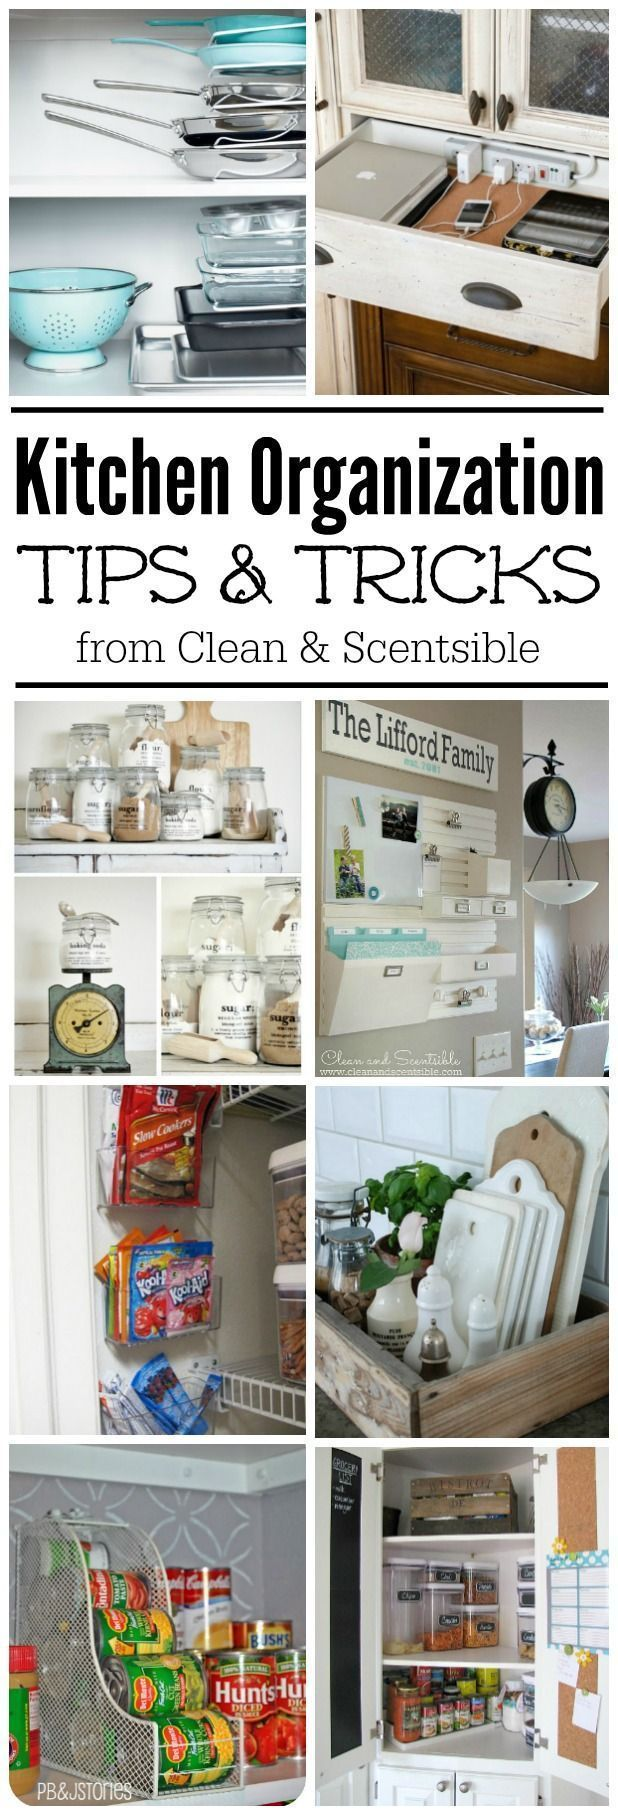 best for the home images on pinterest organization ideas for